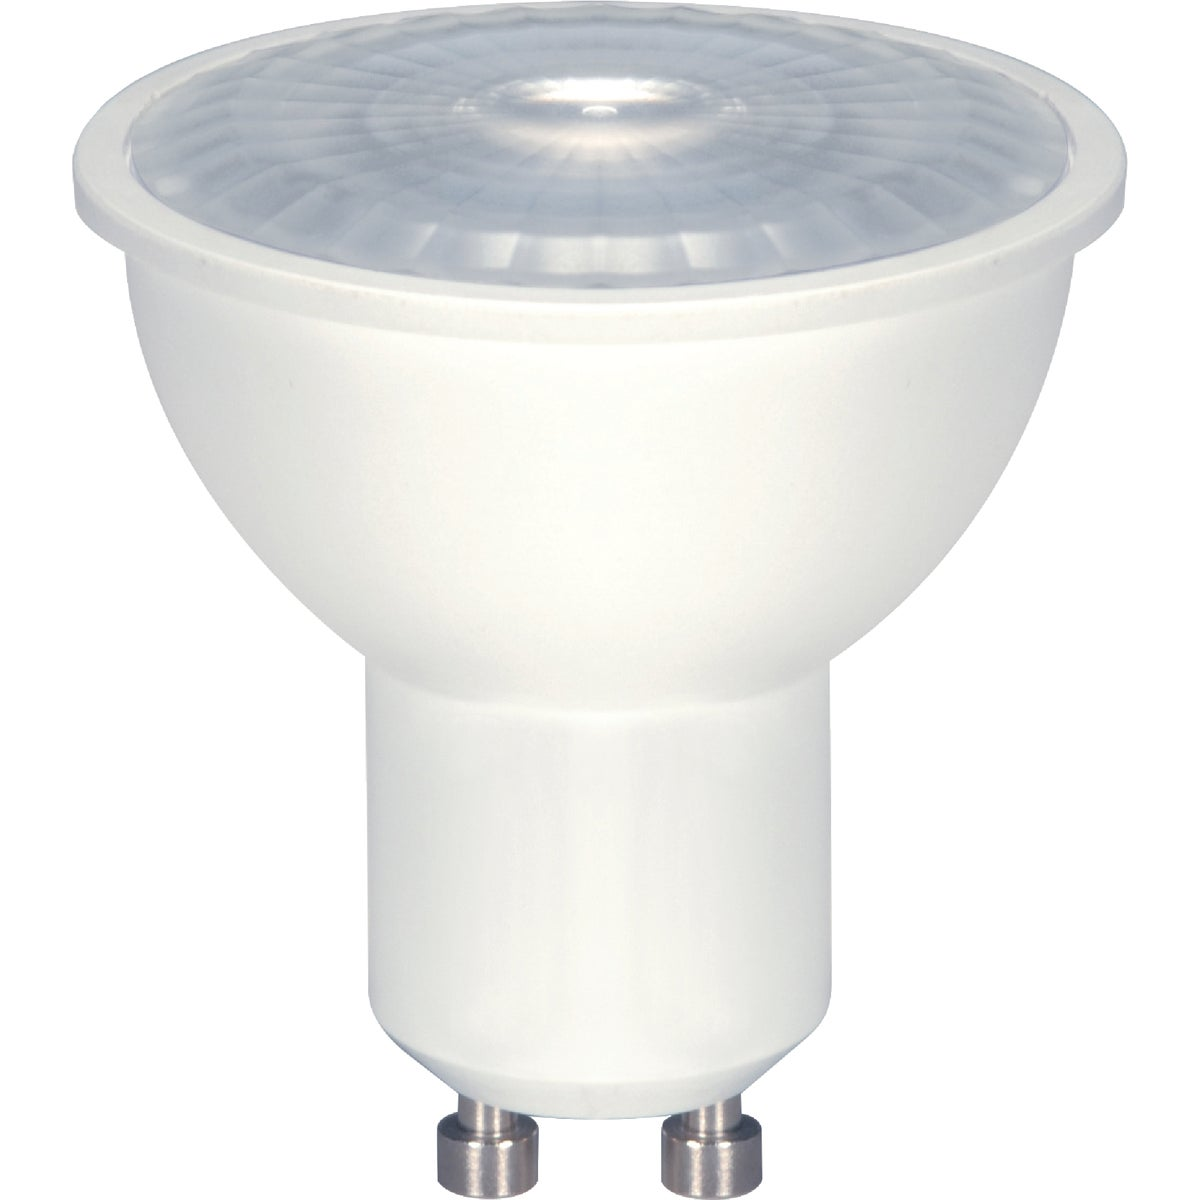 7W 12V MR16 LED 30K BULB - RLMR16712V30KD by TCP